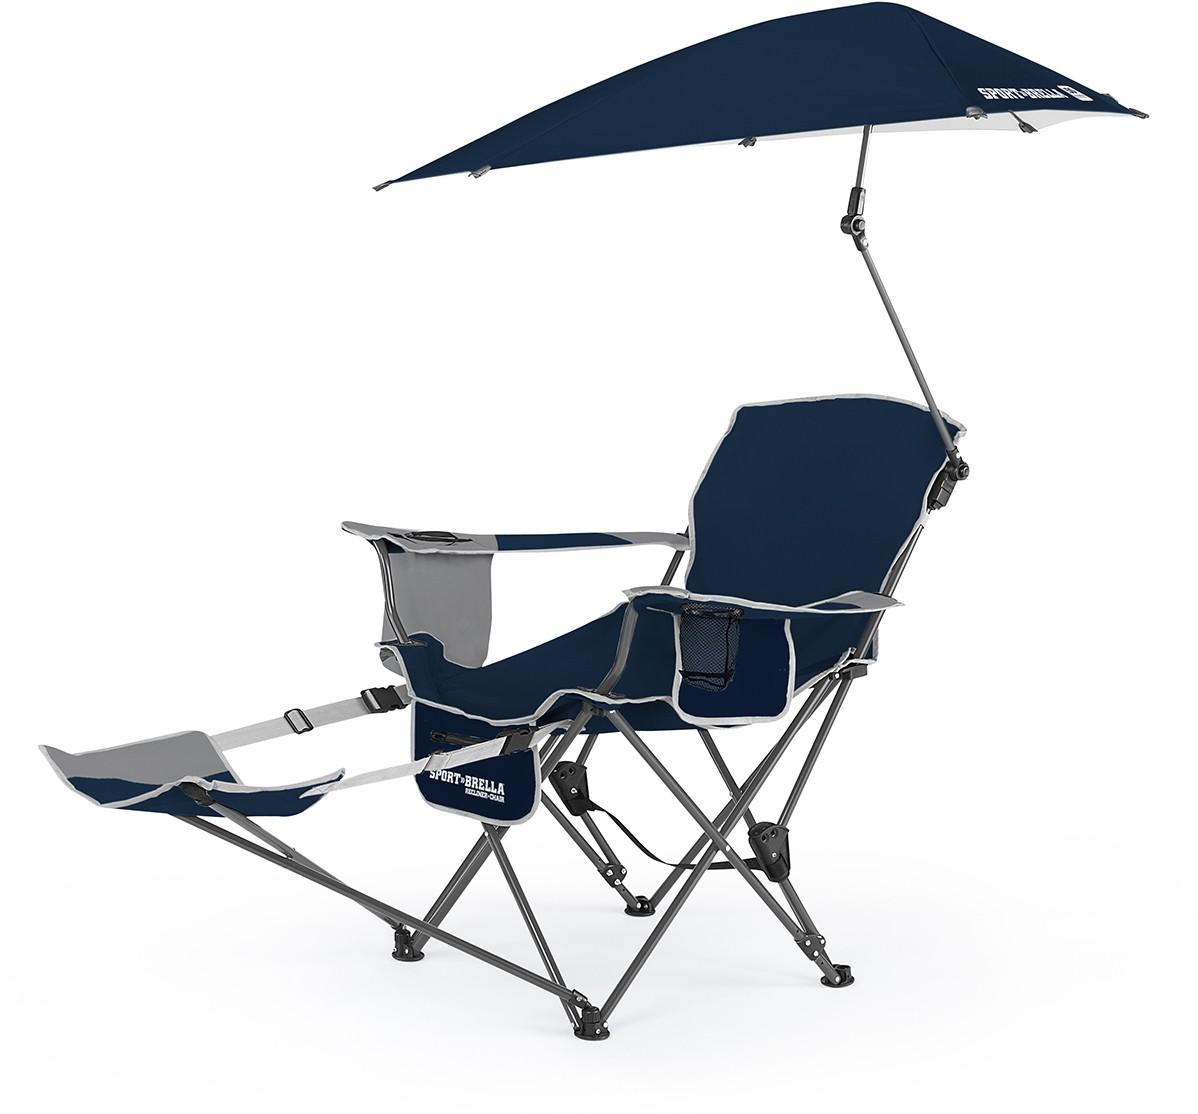 sc 1 st  Anthem Sports & SKLZ Sport-Brella Folding Recliner Chair w/ Umbrella u0026 Footrest islam-shia.org